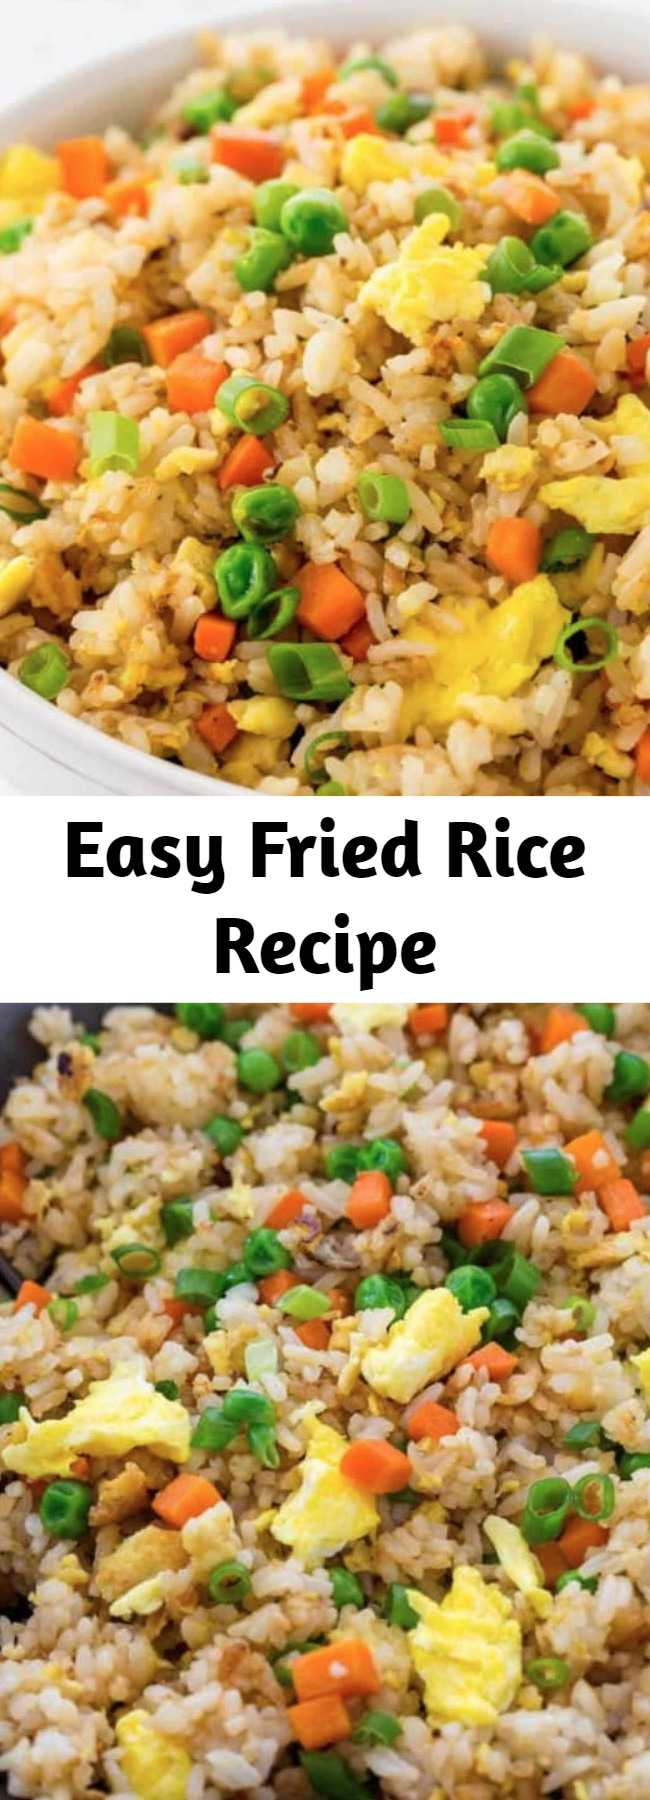 Easy Fried Rice Recipe - Chinese fried rice recipe made with fragrant jasmine rice, carrots, peas, and scrambled eggs. Put down the takeout menu and make your own! #friedrice #chinesefood